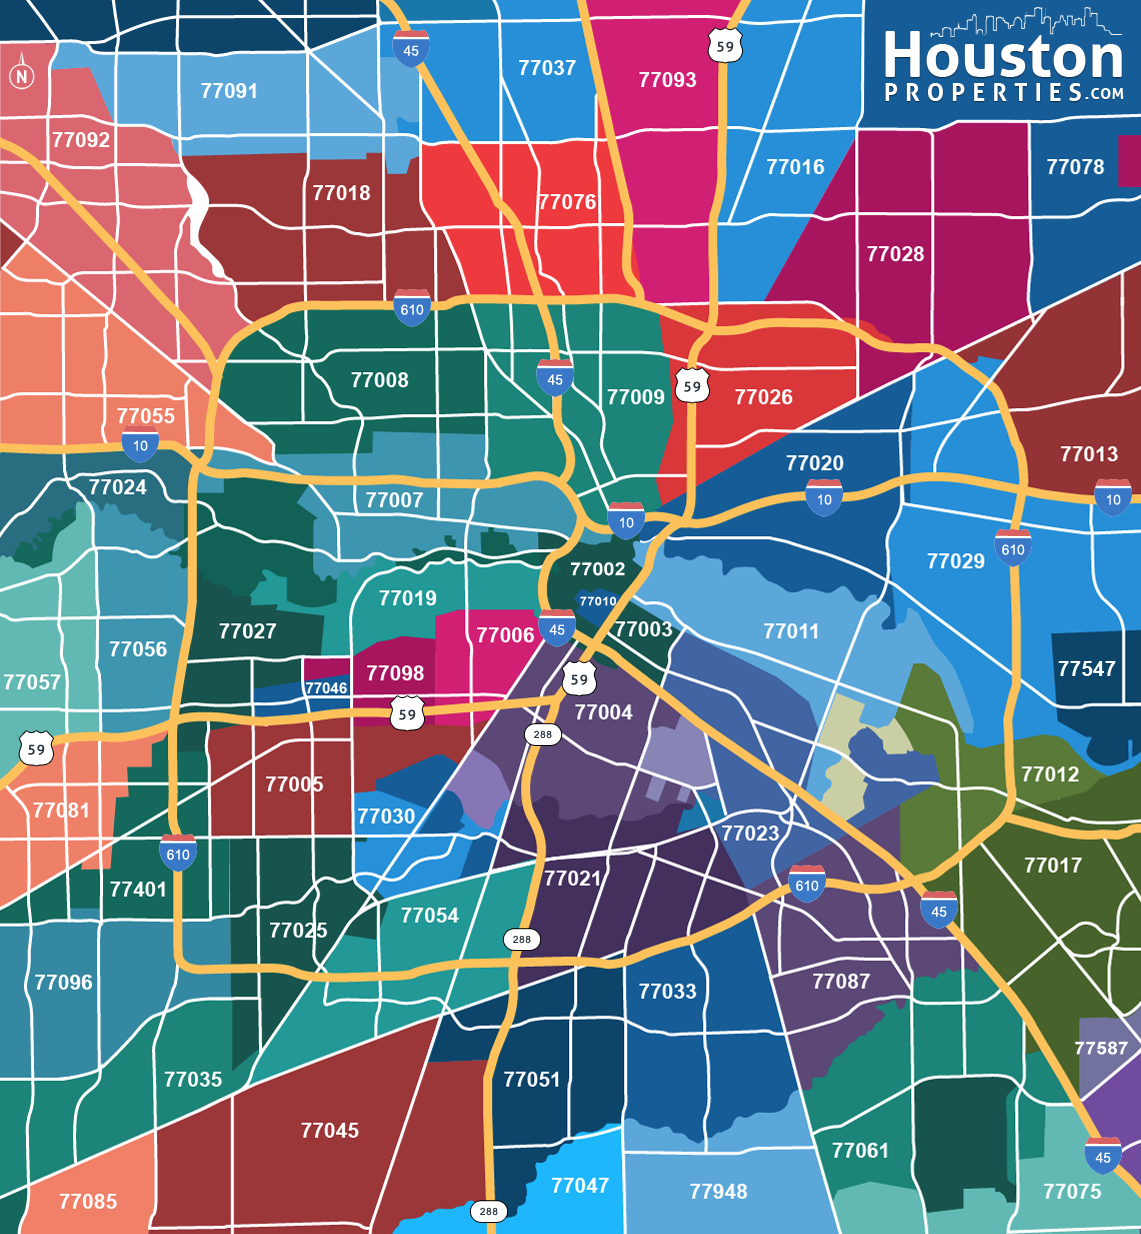 Zip Code Map Houston Tx 2020 Update: Houston Neighborhoods (With images) | Houston map